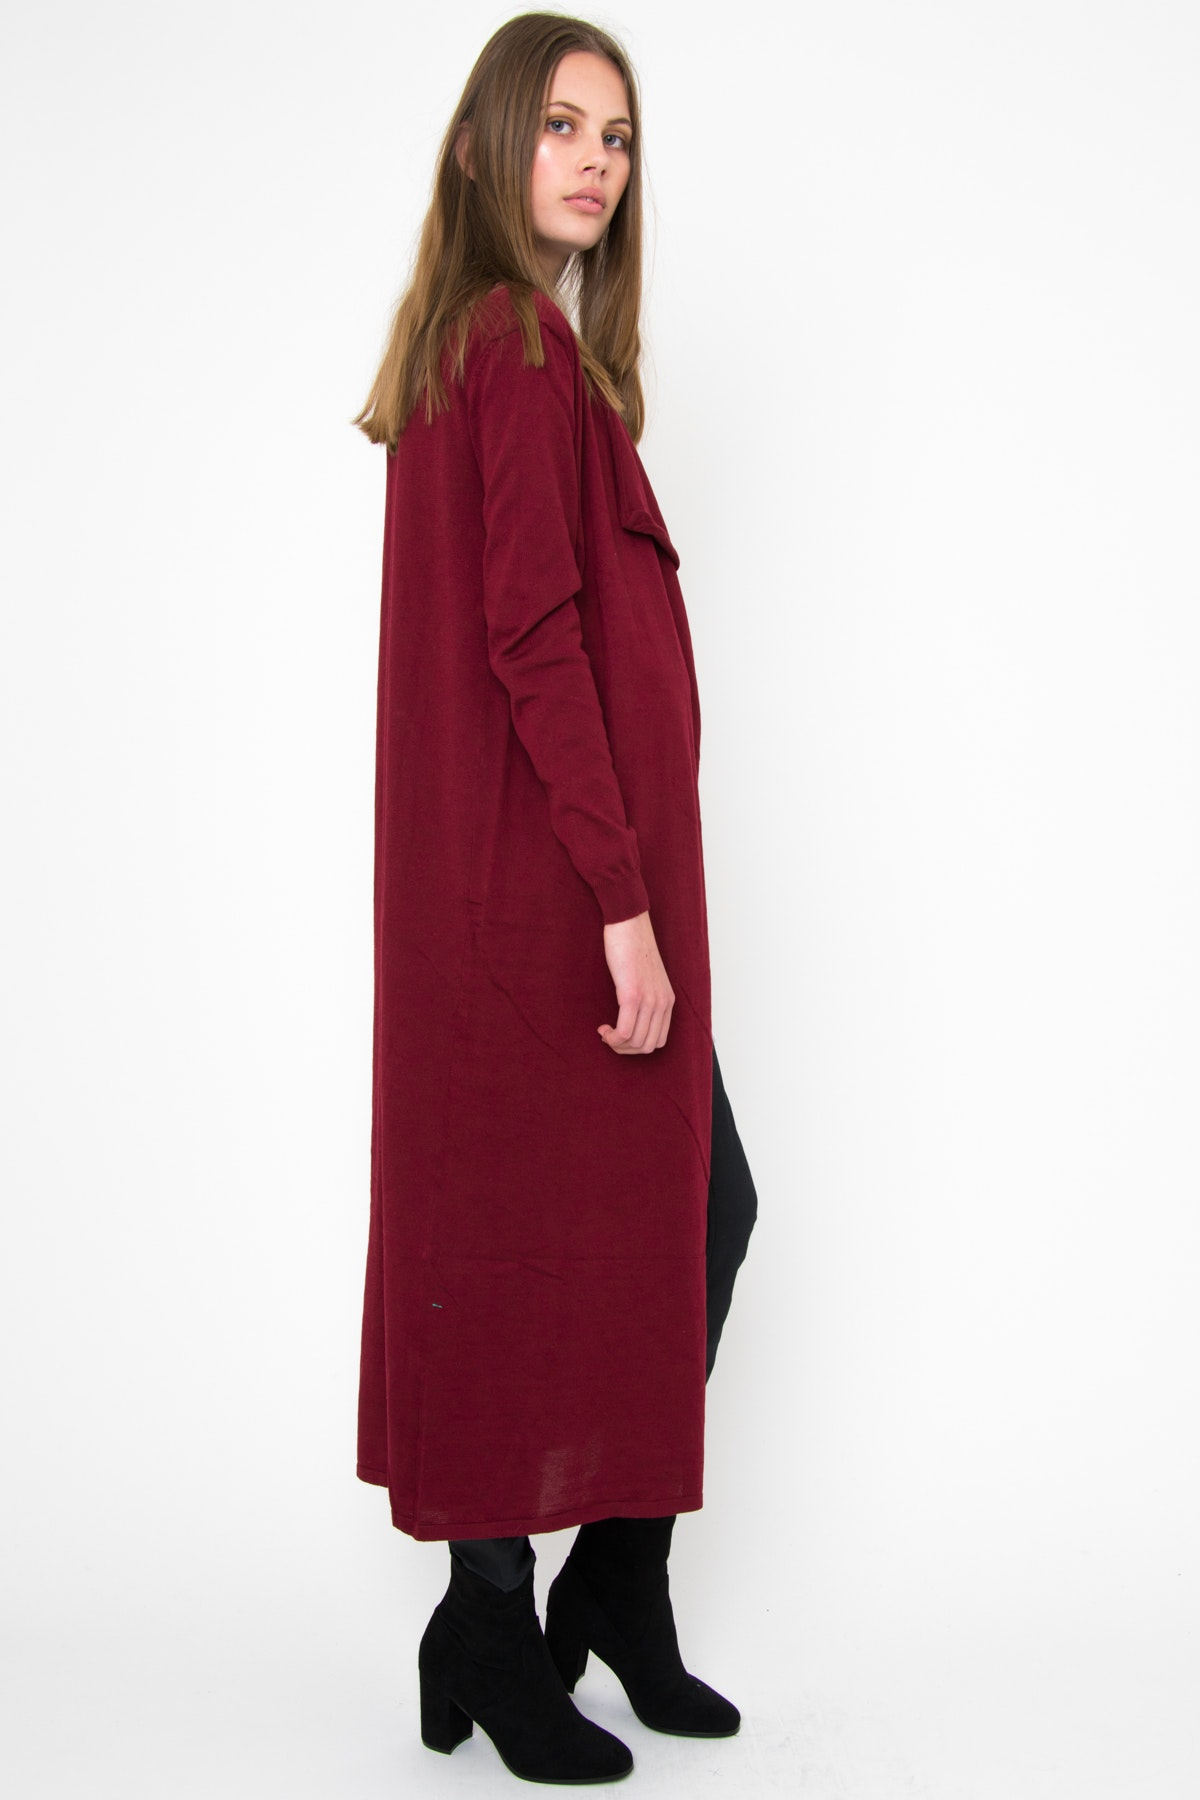 Ebby and I - Collete Maxi Cardigan - Burgundy - Airlie / Ellis ...